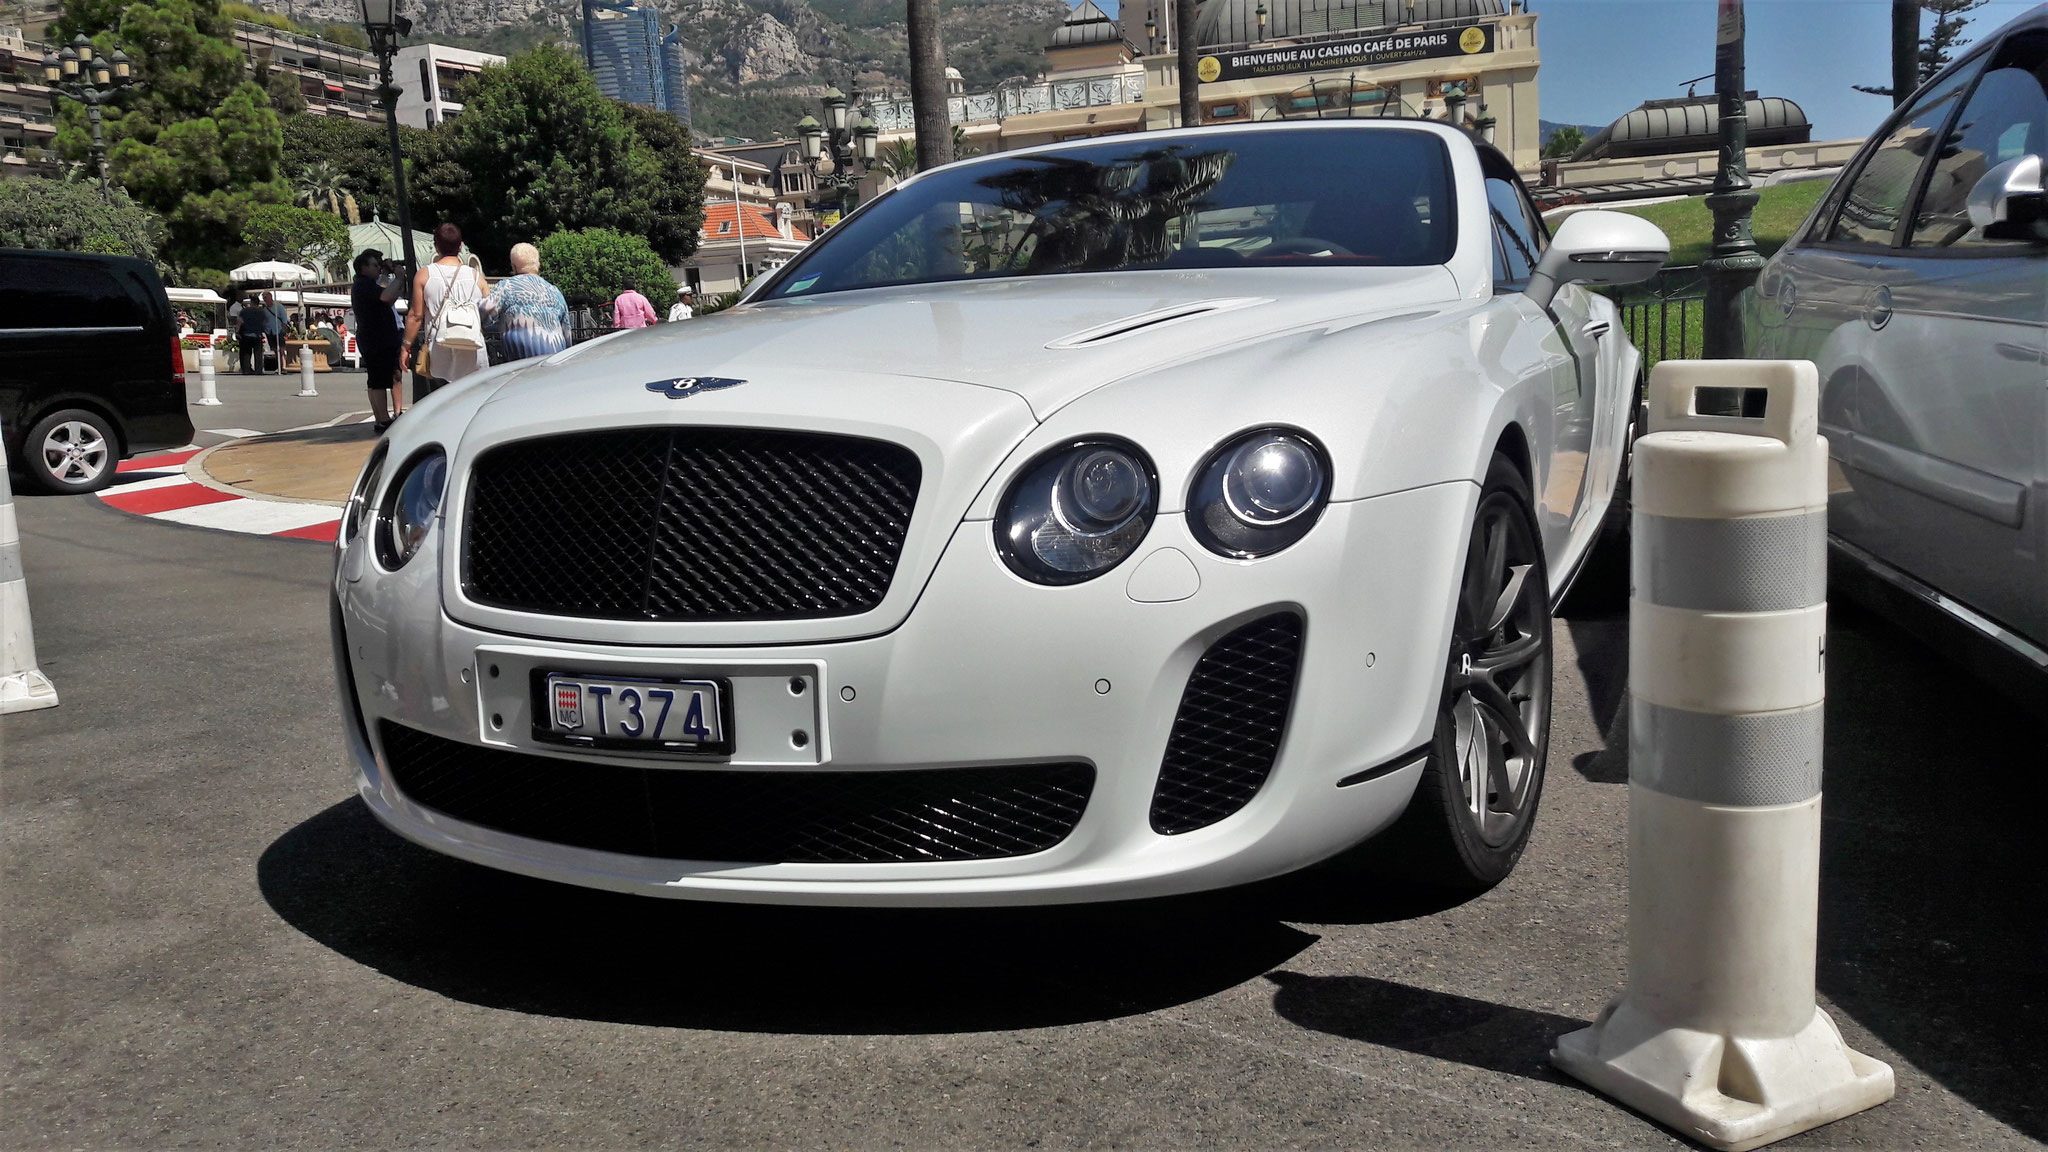 Bentley Continental GTC Supersports - T374 (MC)